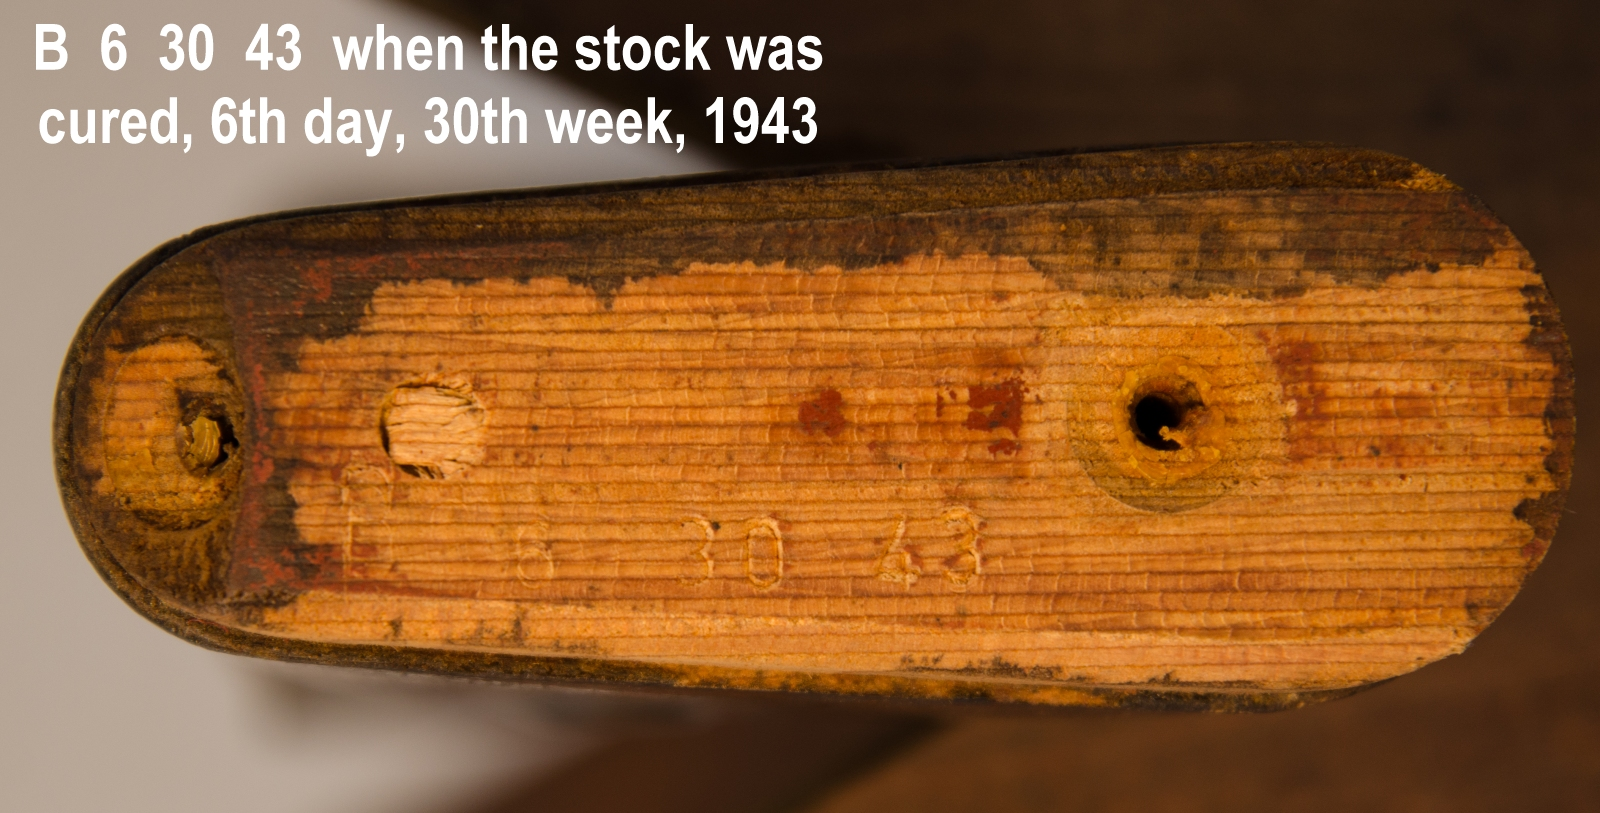 butt end of stock showing cure date of 6th day, 30th week, 1943